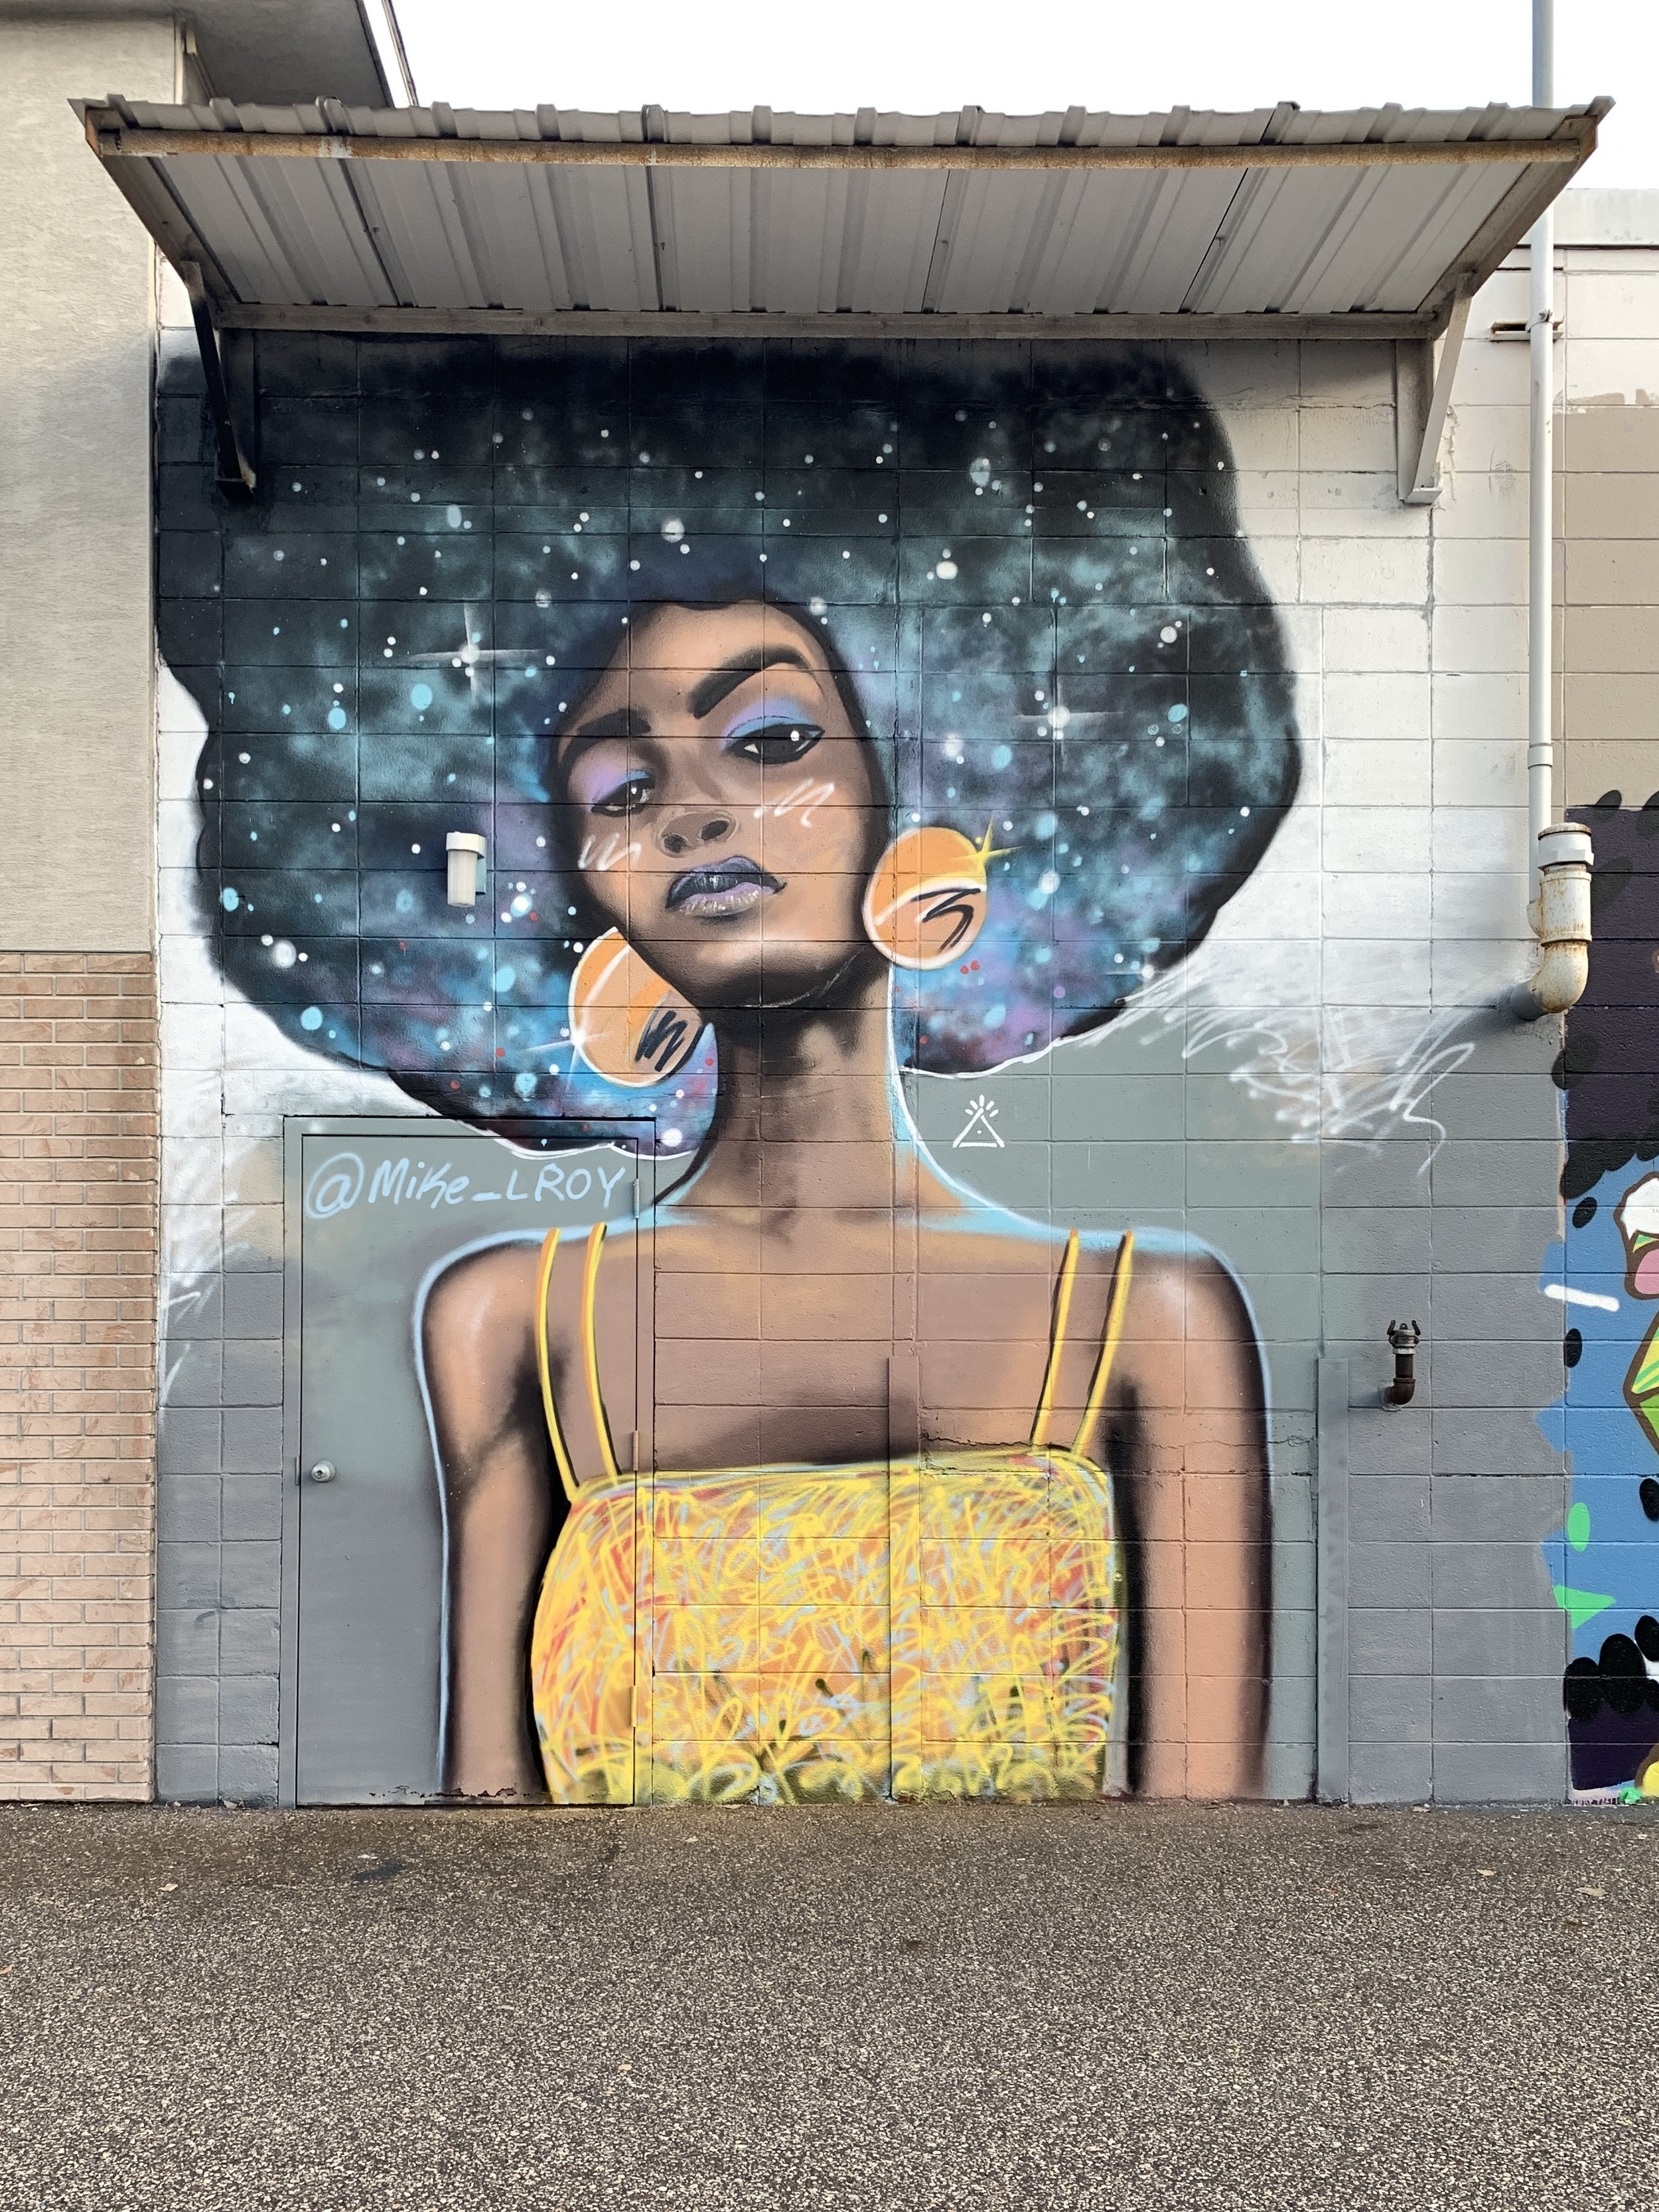 Mike Lroy Intergalactic Space Afro Woman Mural Monona, WI 2.jpg